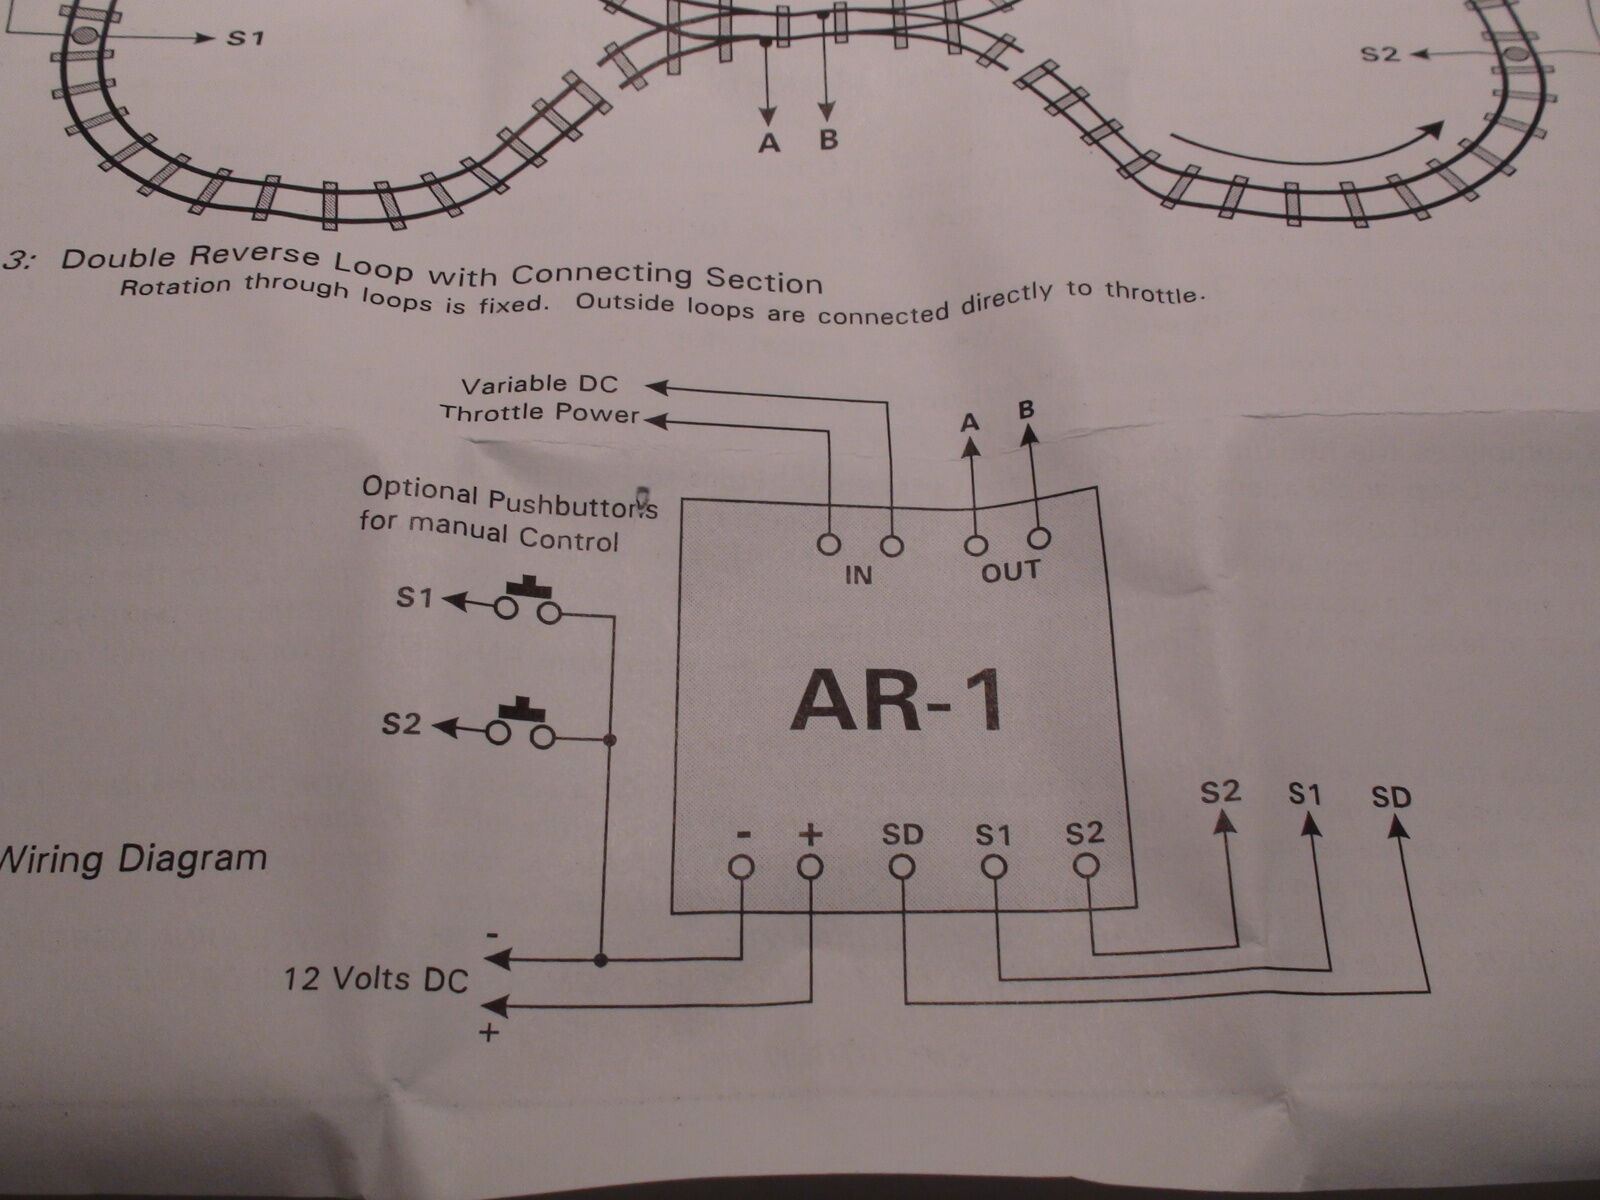 Model Railroading Automatic Reverse Circuit By Circuitron Ar 1 Ebay Dcc Bdl 168 Wiring Diagram